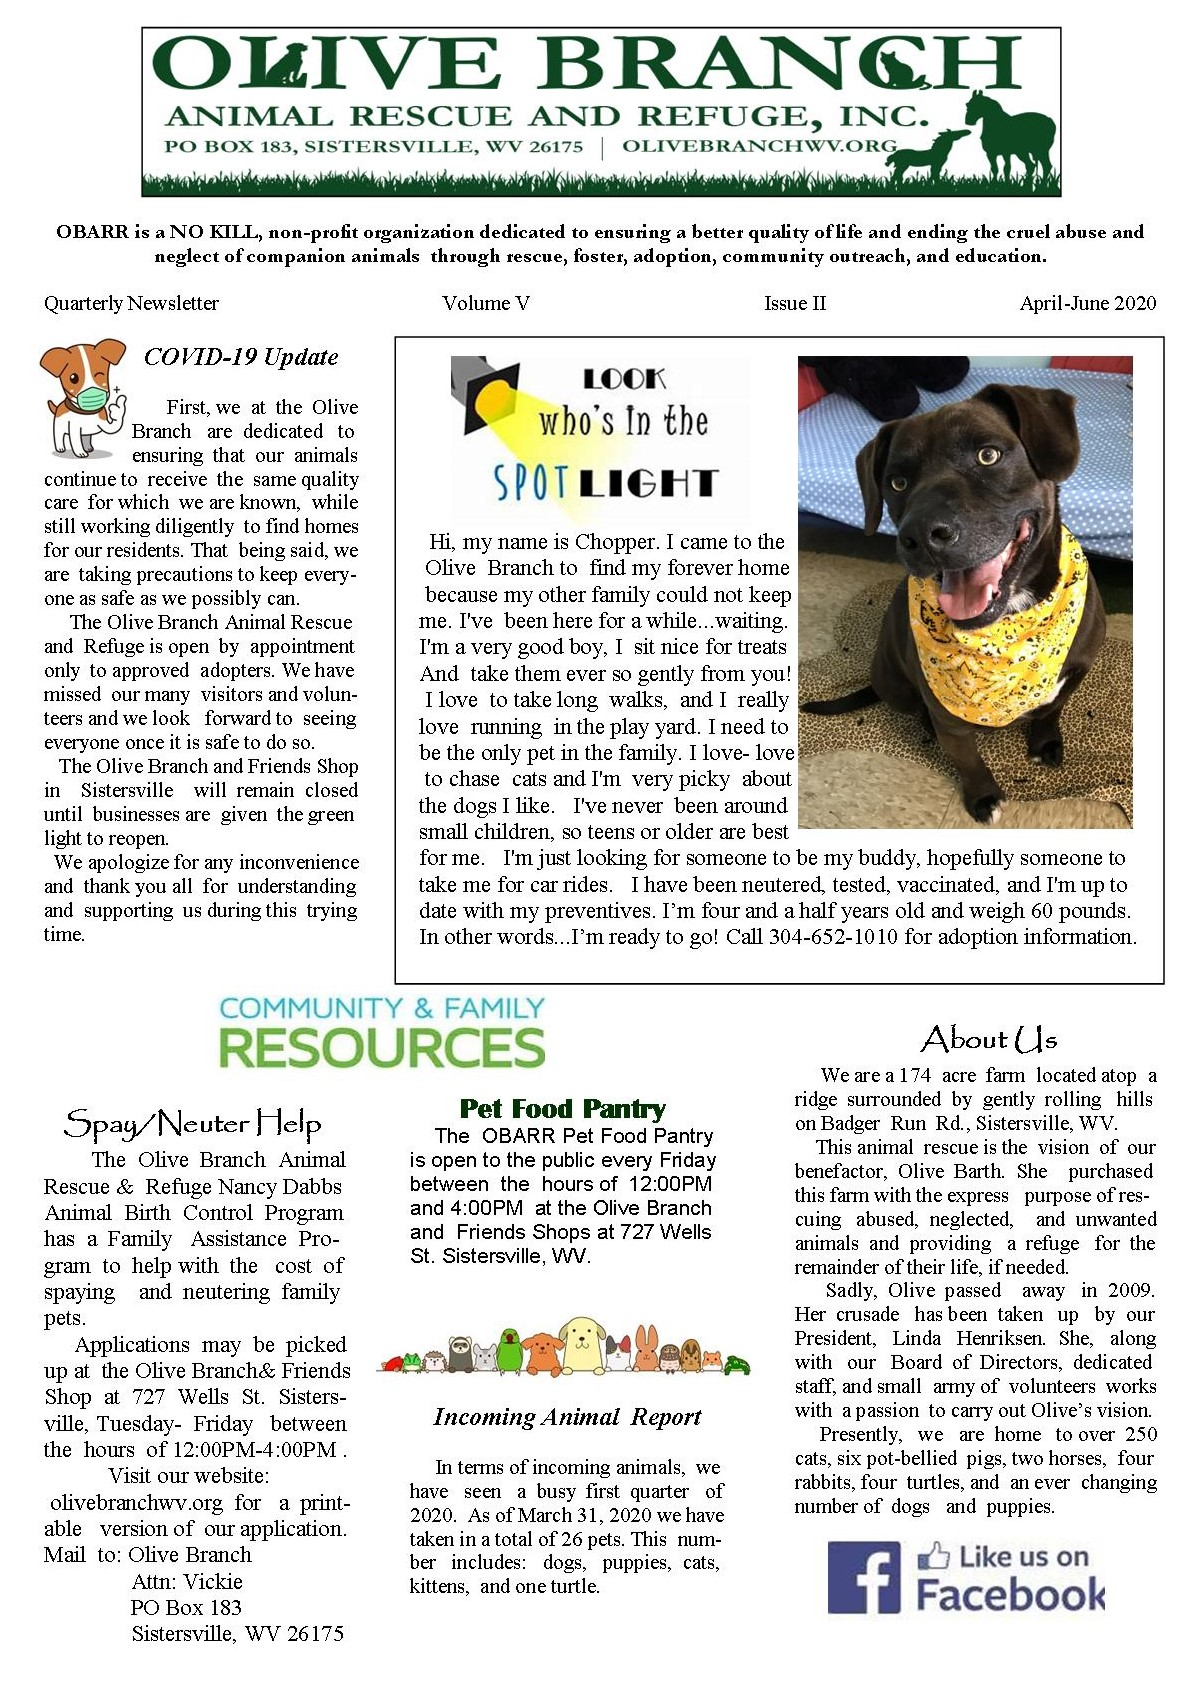 Newsletter April to June 2020 page 1